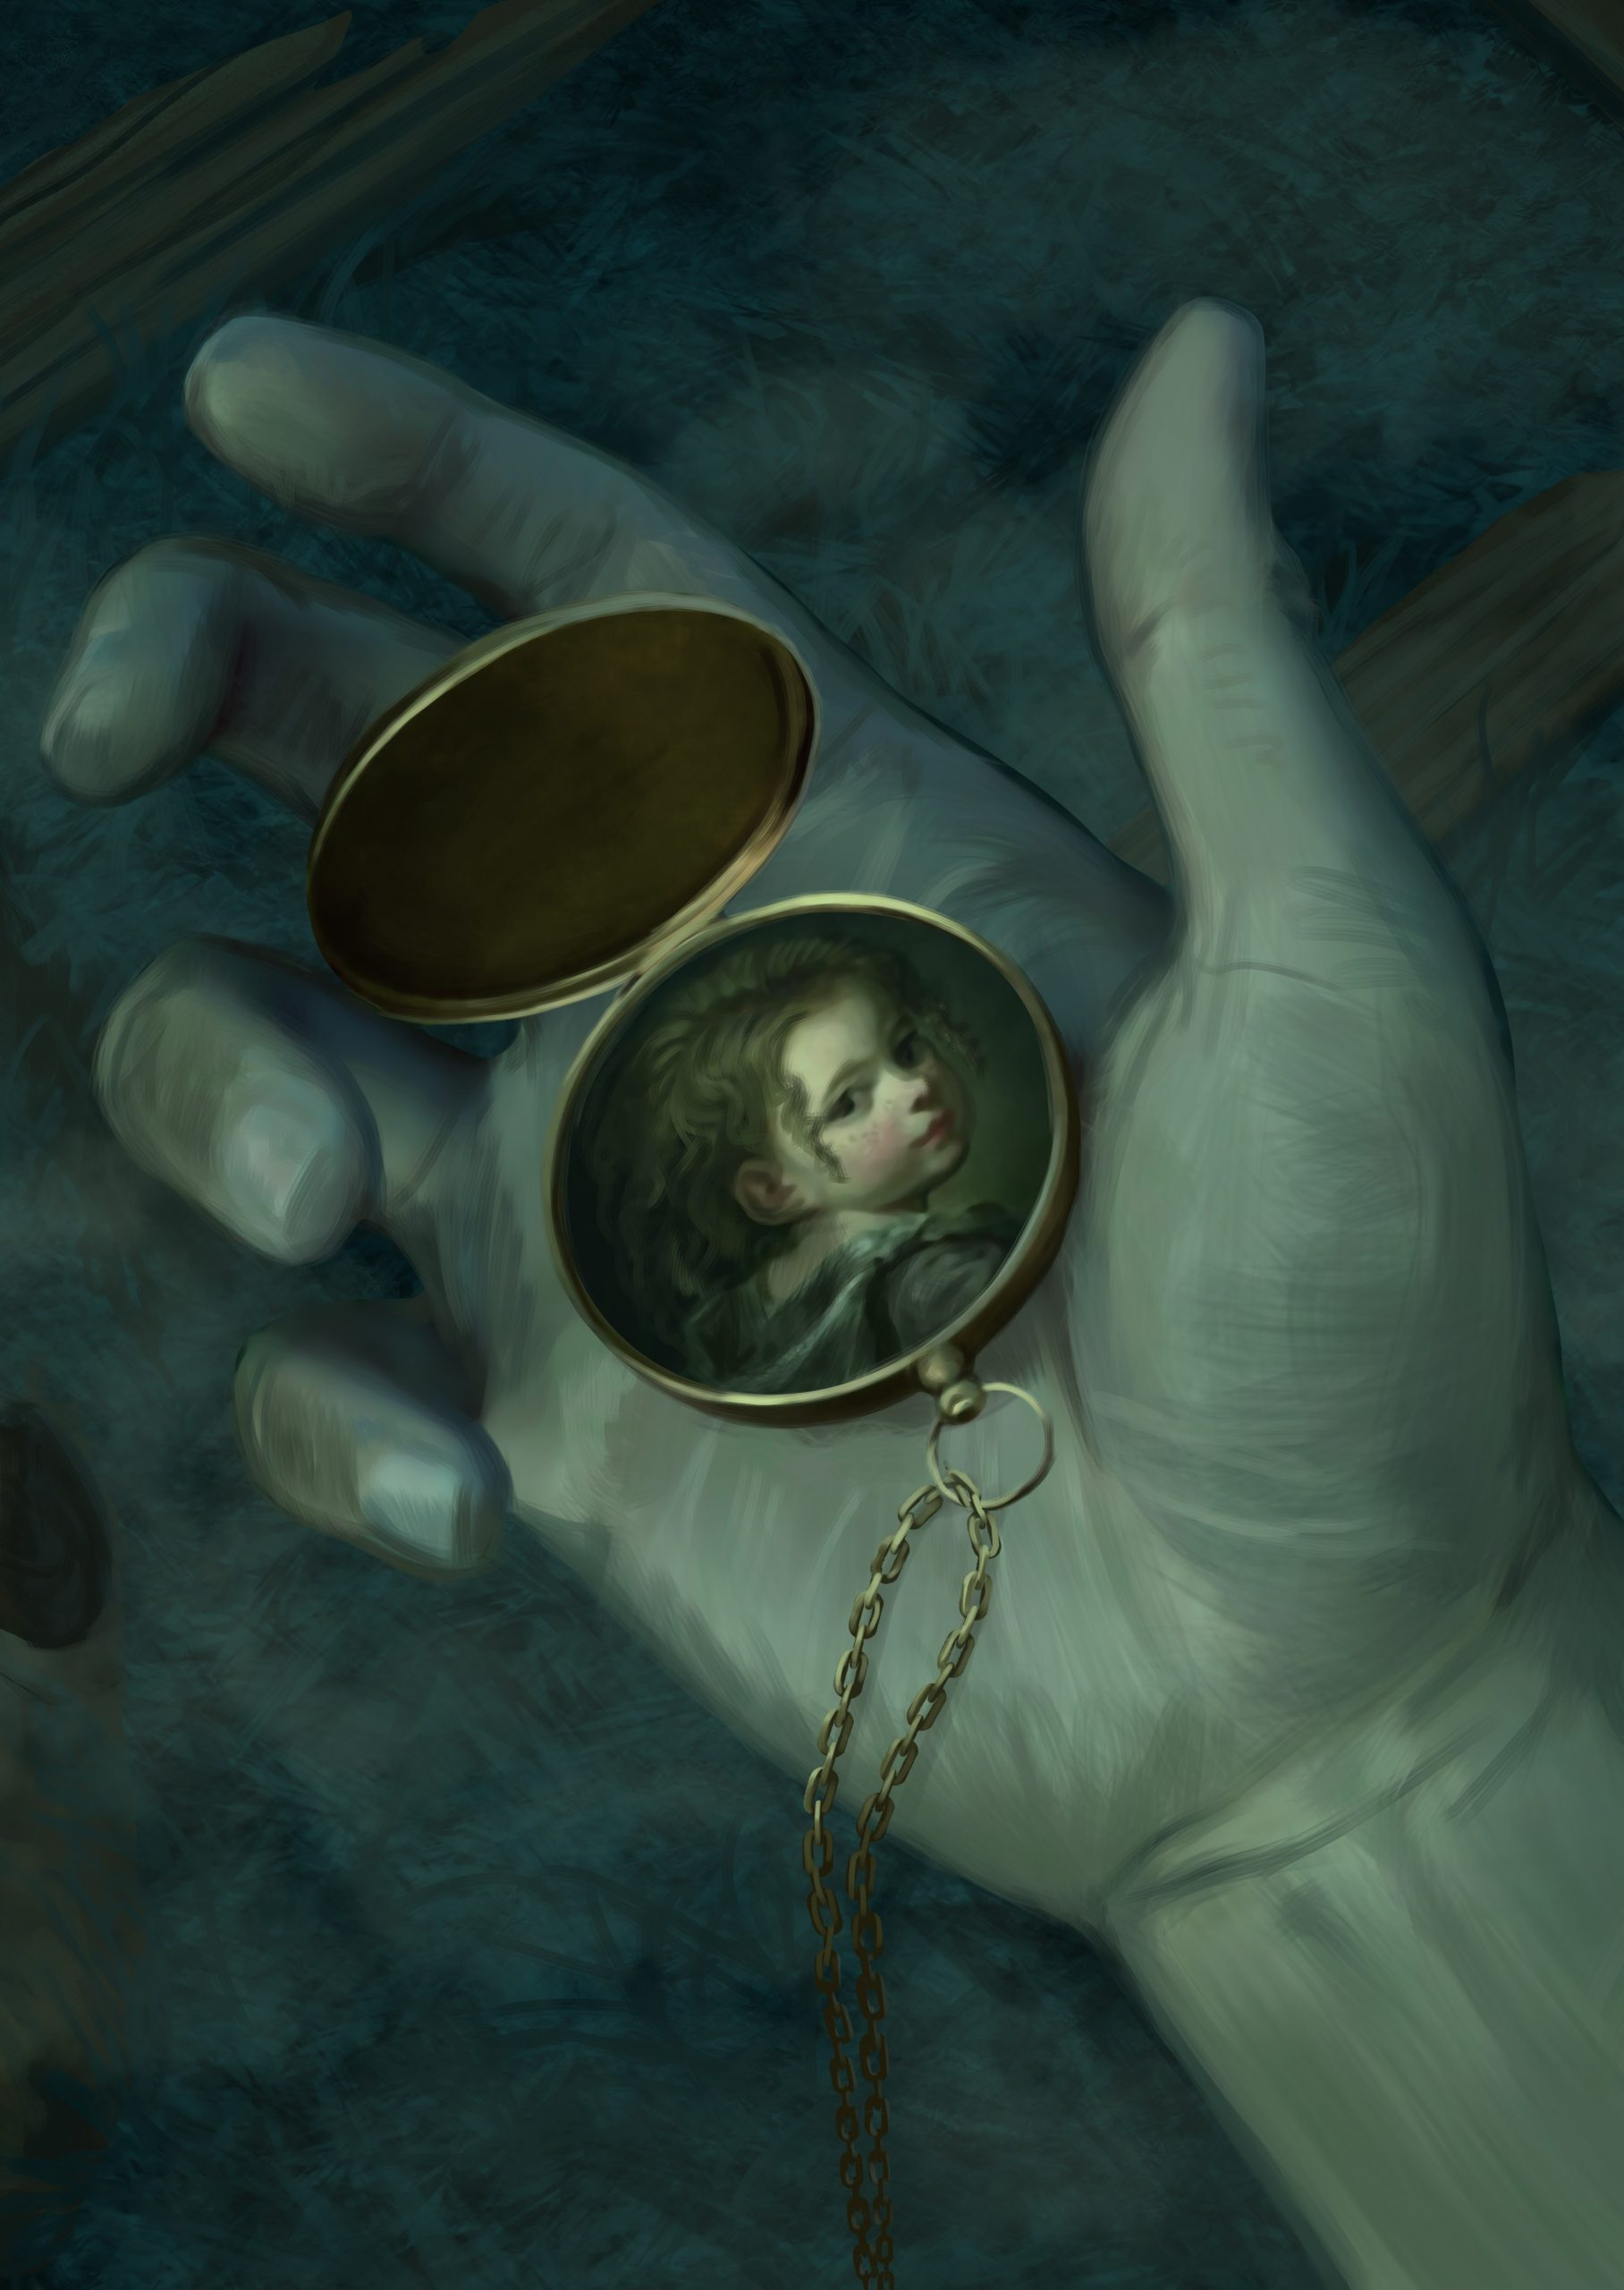 Locket with portrait of a young woman